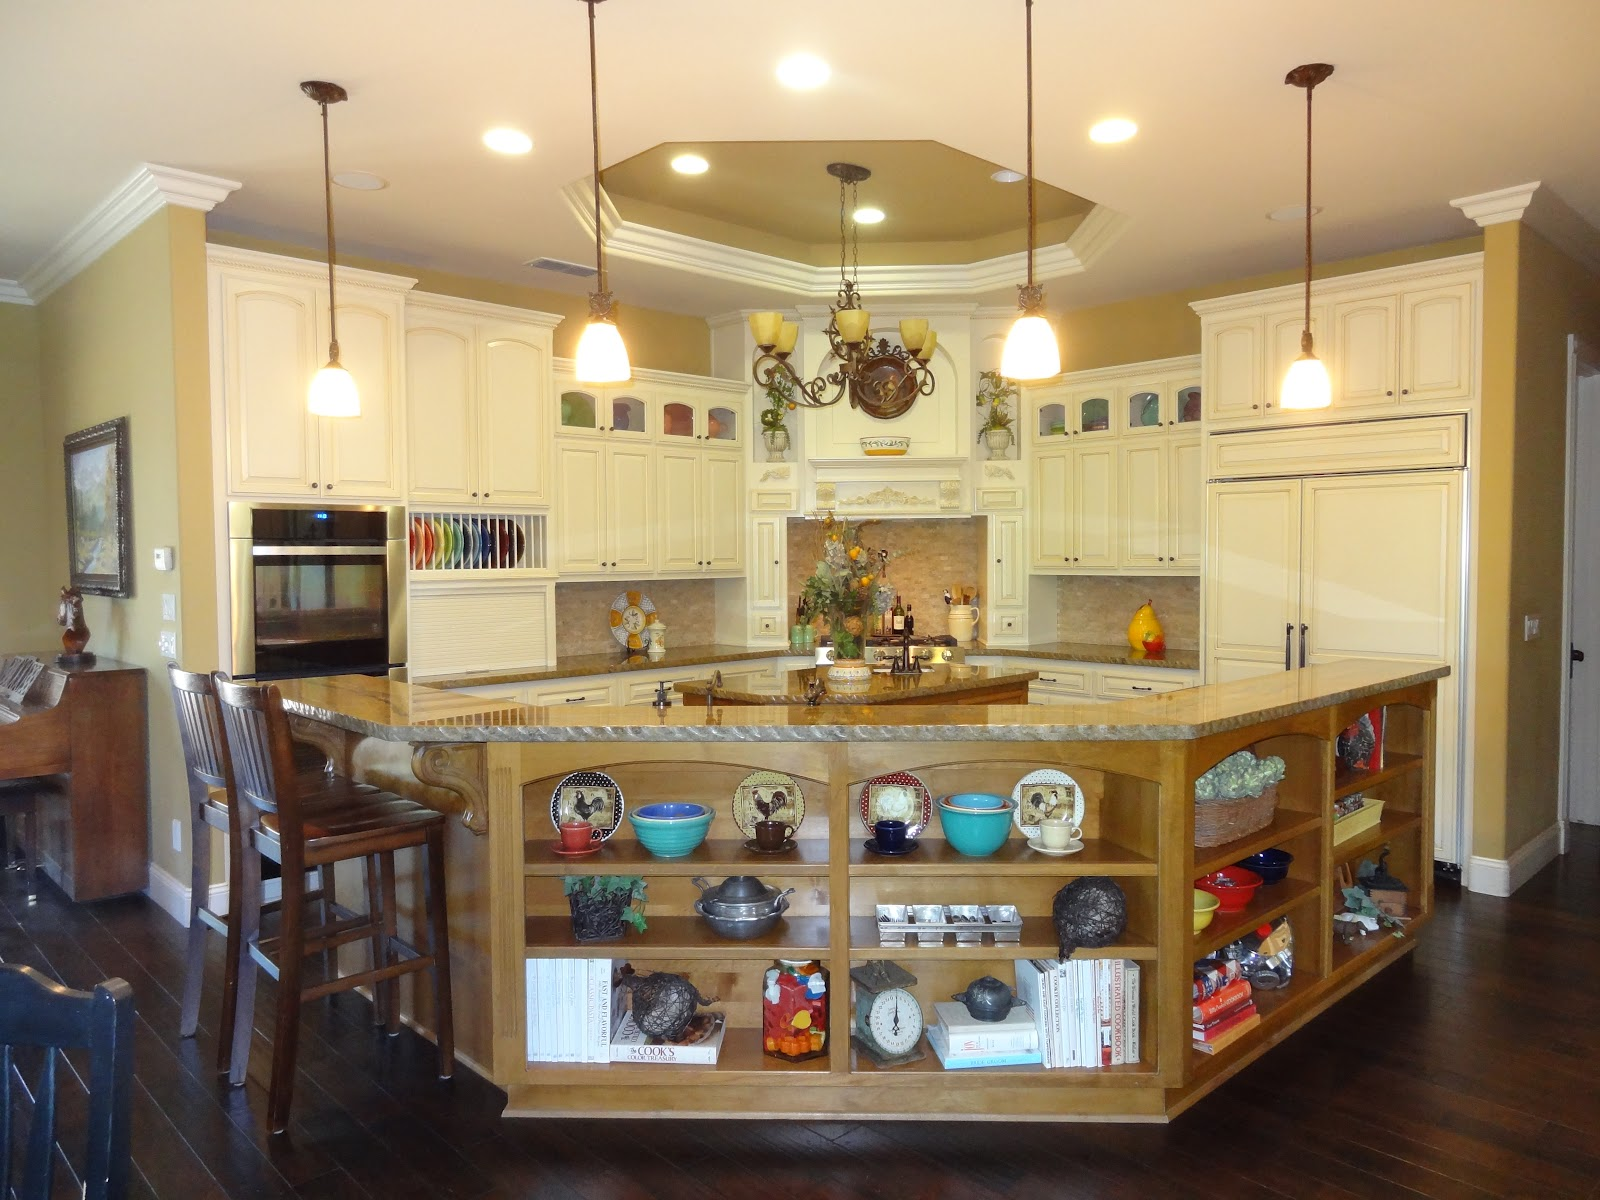 Jo Traveler Kitchen accents need to be simple and few